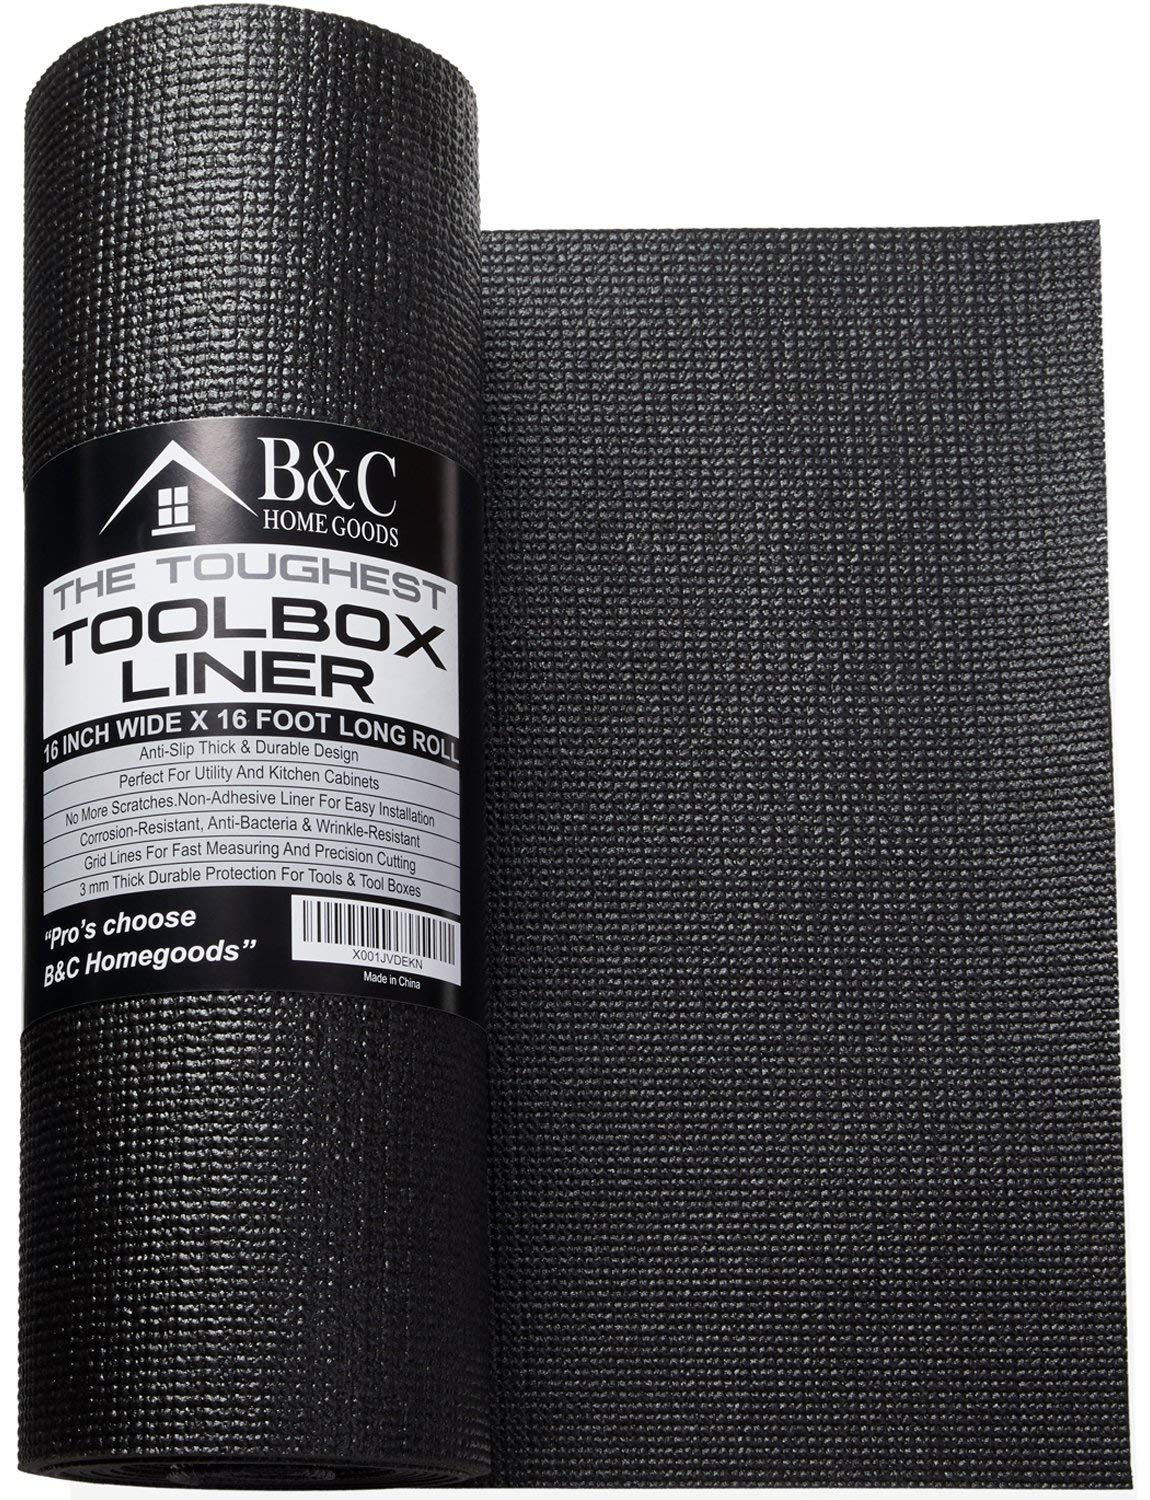 Professional Tool Box Liner and Drawer Liner - Black 16 inch x 16 feet Non-Slip Shelf Liner Is Perfect for Protecting Your Tools - These Thick Cabinet Liners Are Easily Adjustable to Fit Any Space by B&C Home Goods